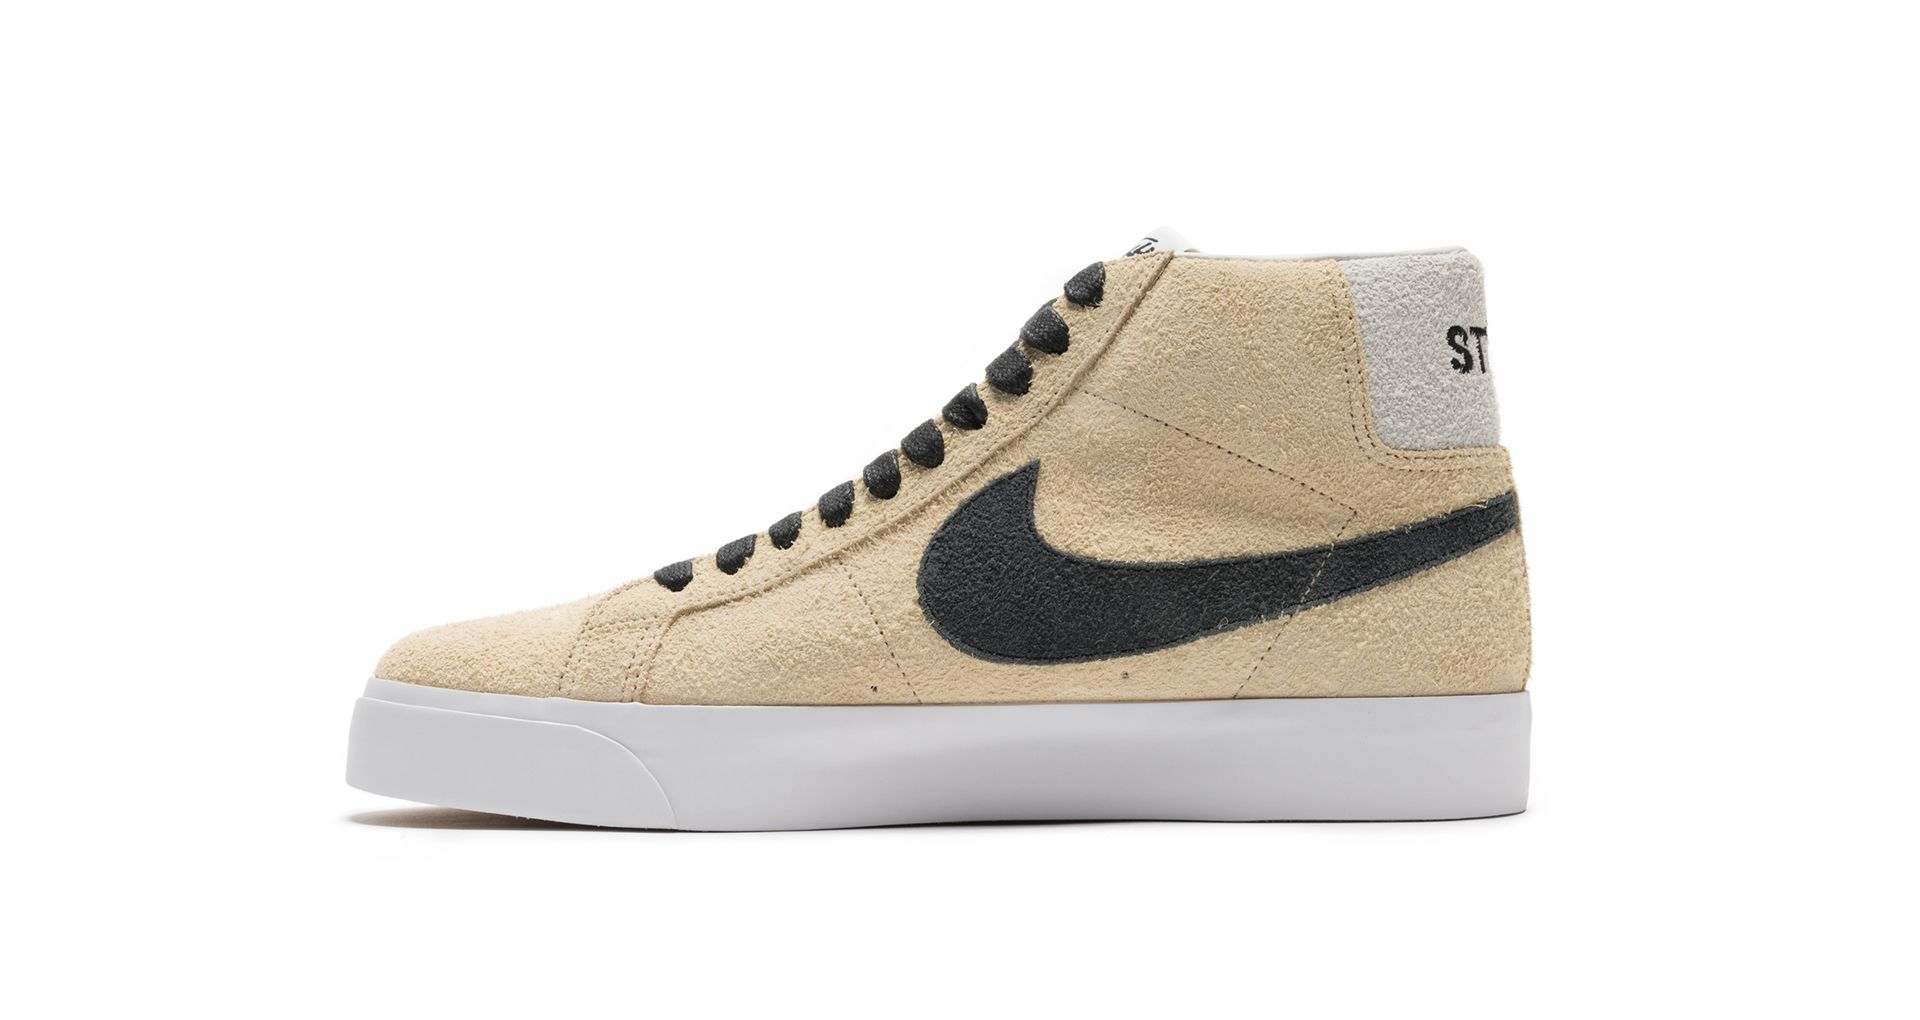 promo code 2f33e 50a66 Nike SB Zoom Blazer Mid Stüssy x Lance 'Midwest Gold & ...